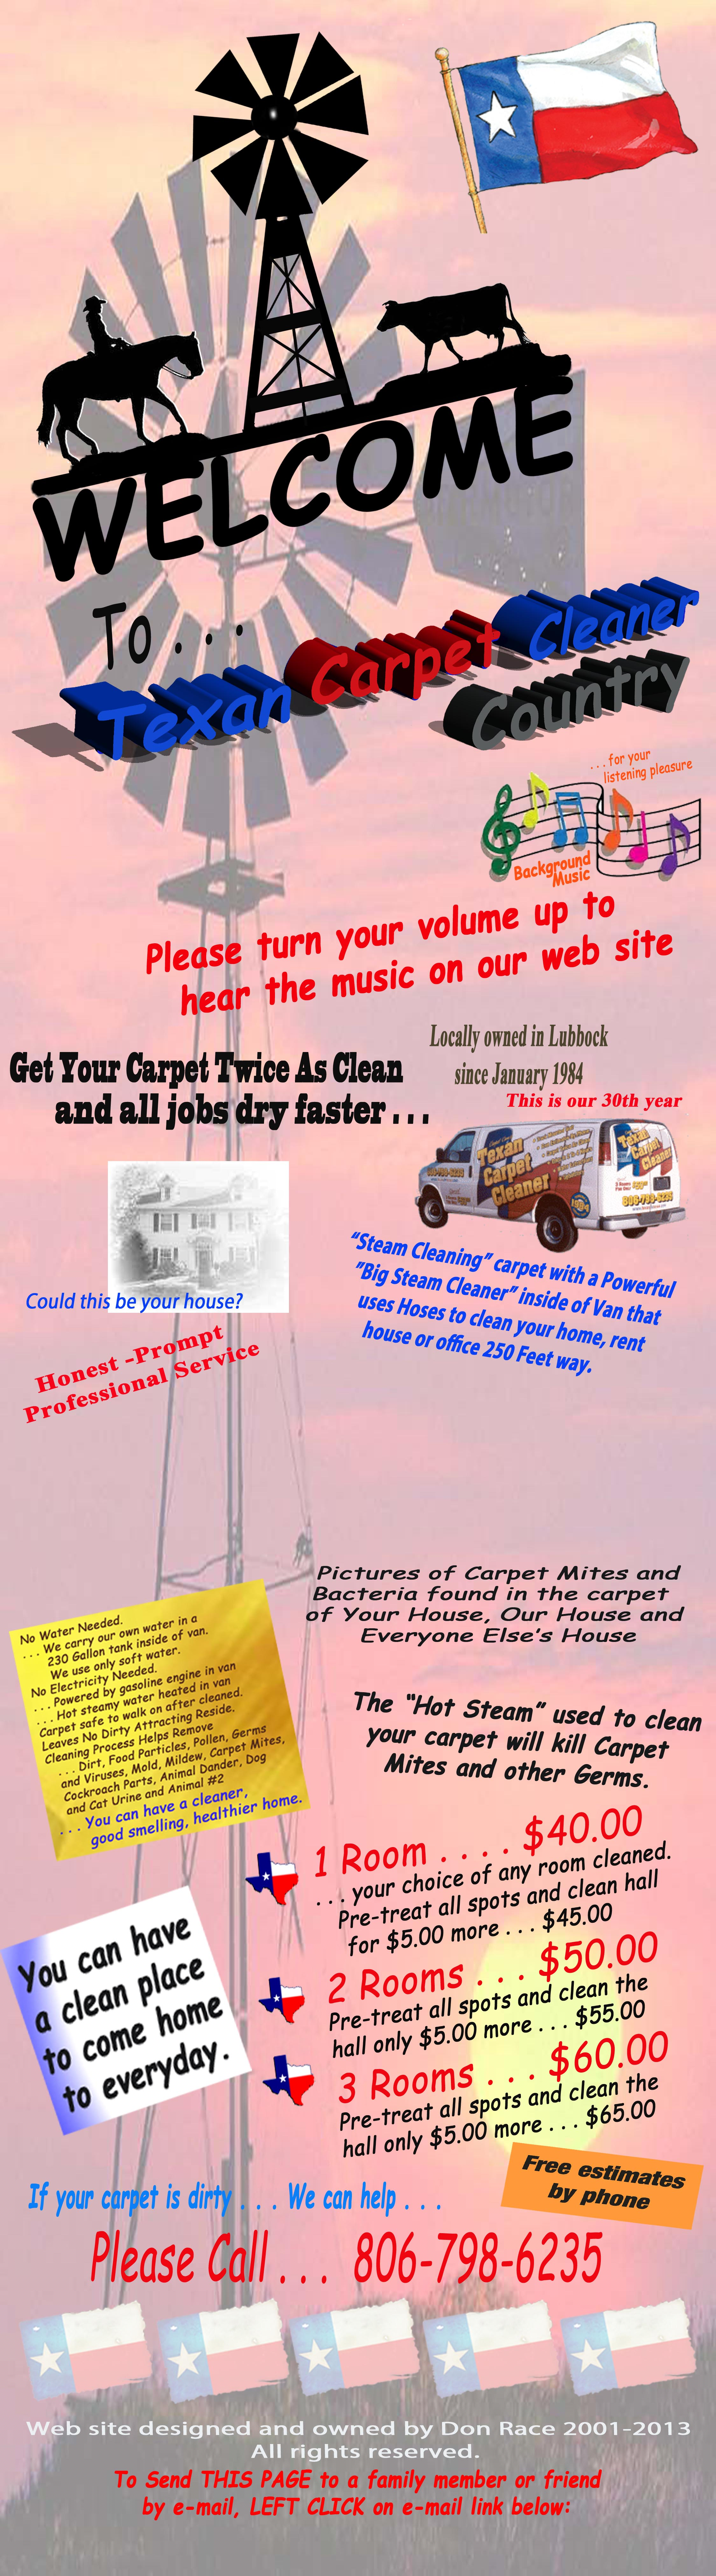 Page 1  WELCOME to Texan Carpet Cleaner Country